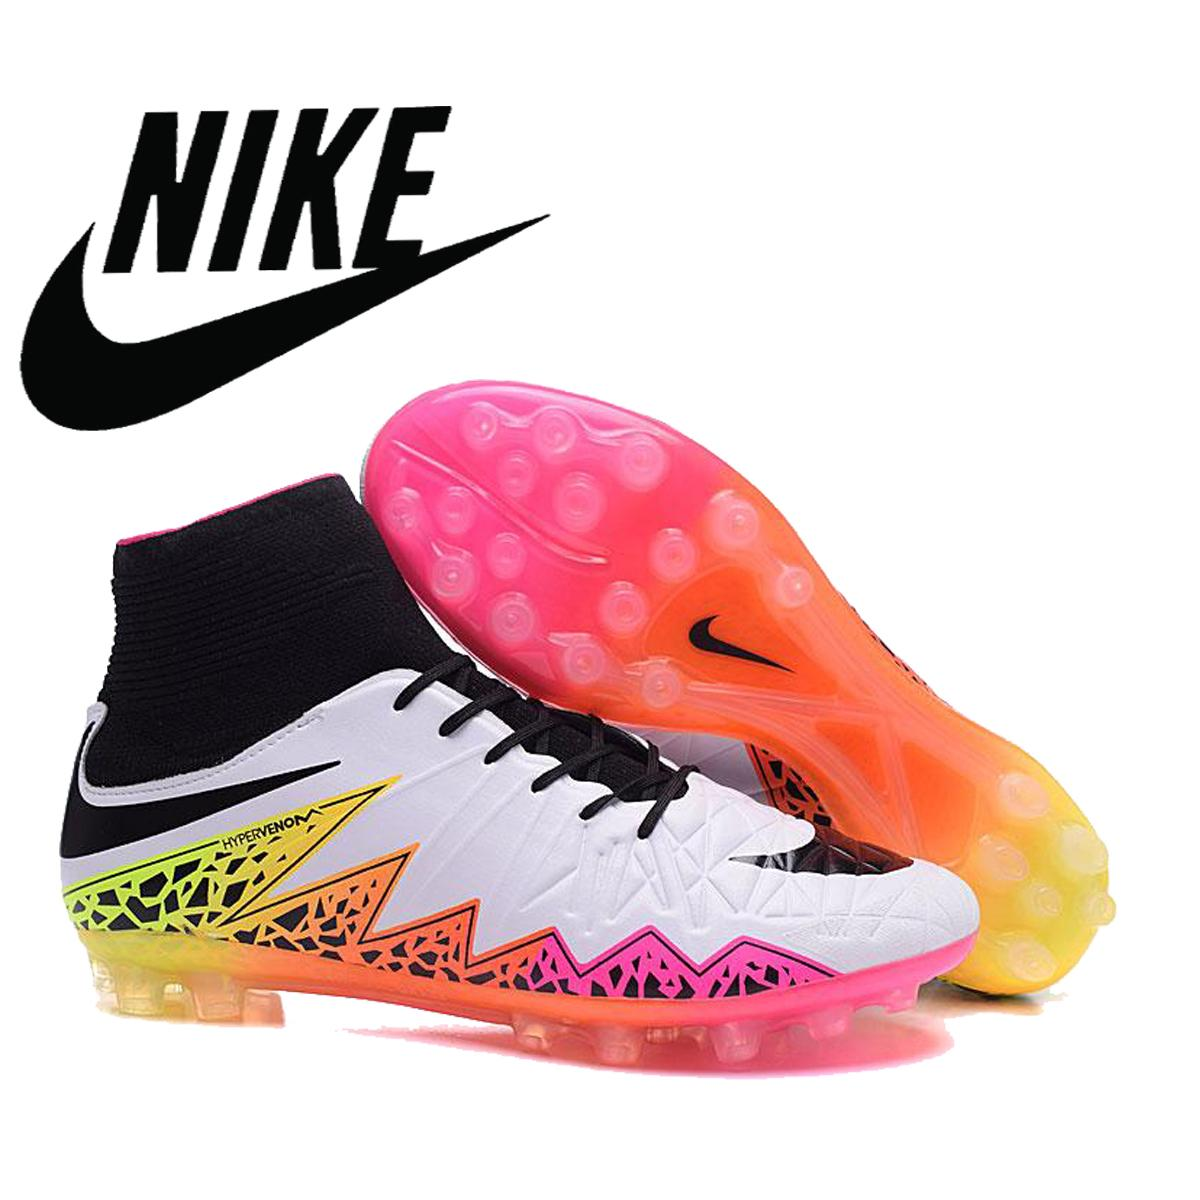 Best Quality Nike Hypervenom Phantom Ii Fg Soccer Cleats With Acc 100%  Original Mens Boys Soccer Cleats Nike Soccer Cleats Acc Rainbow Color At  Cheap Price, ...